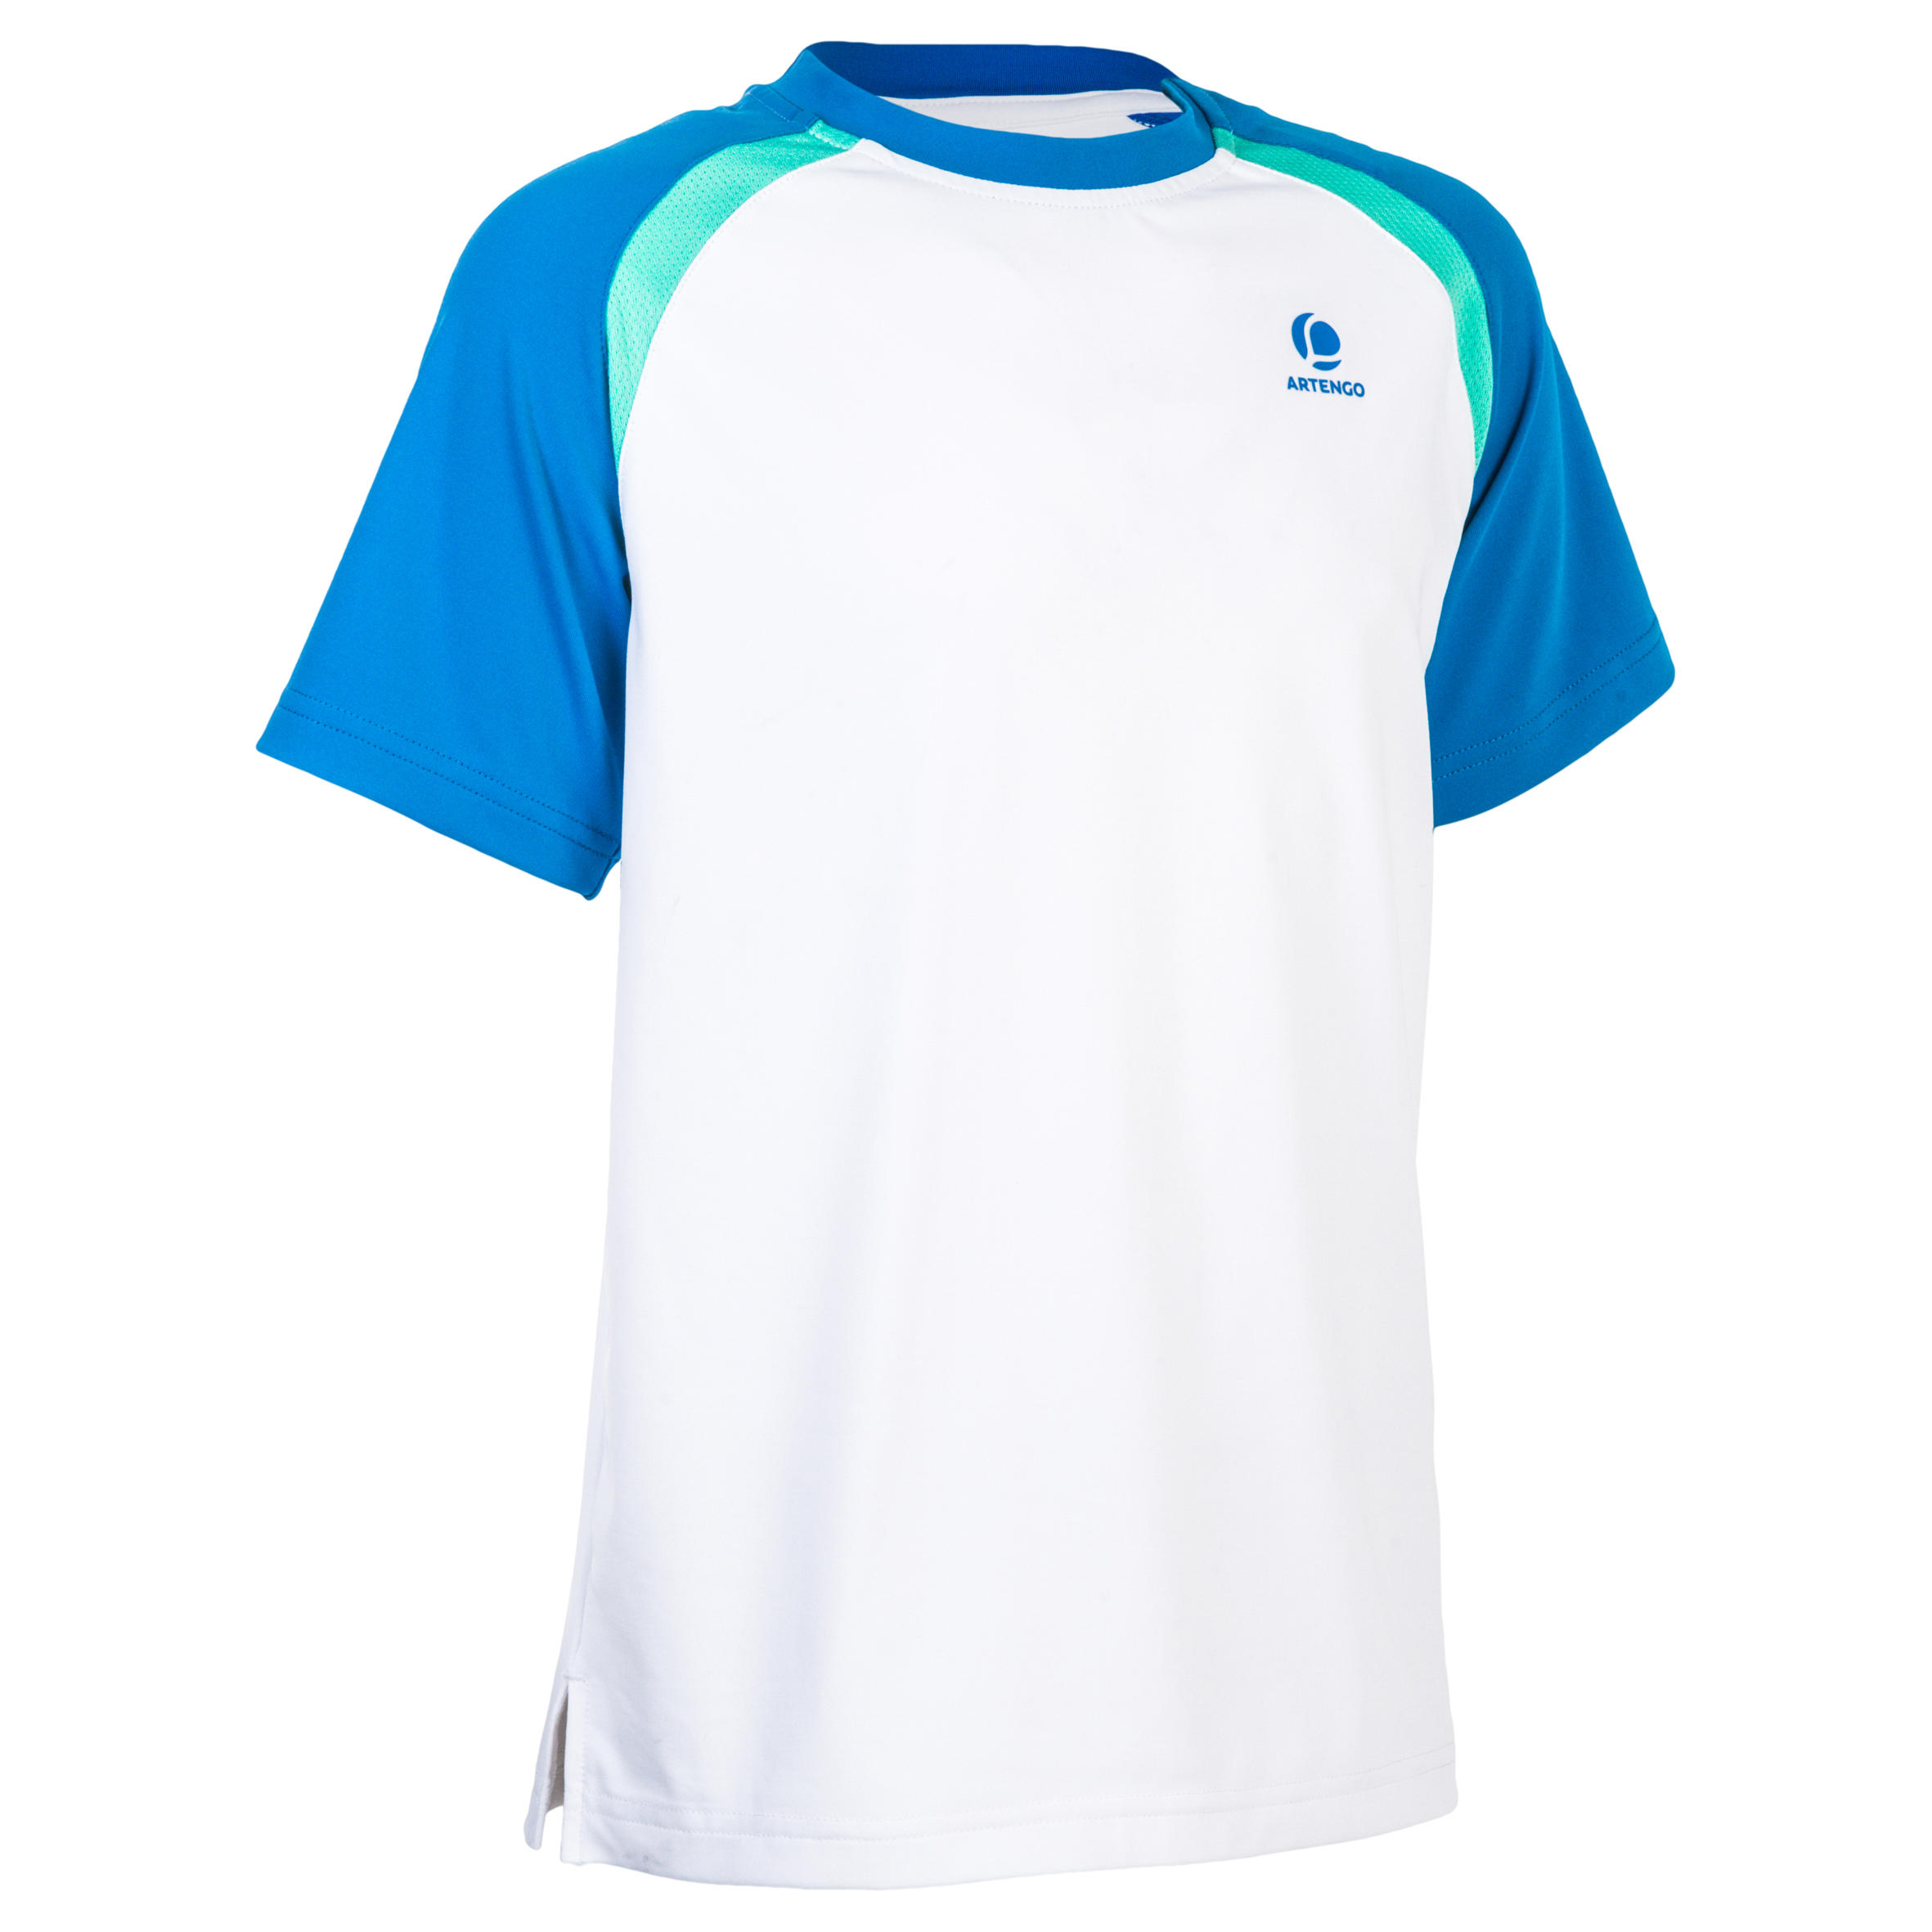 PLAYERA 500 NIÑO BLANCO